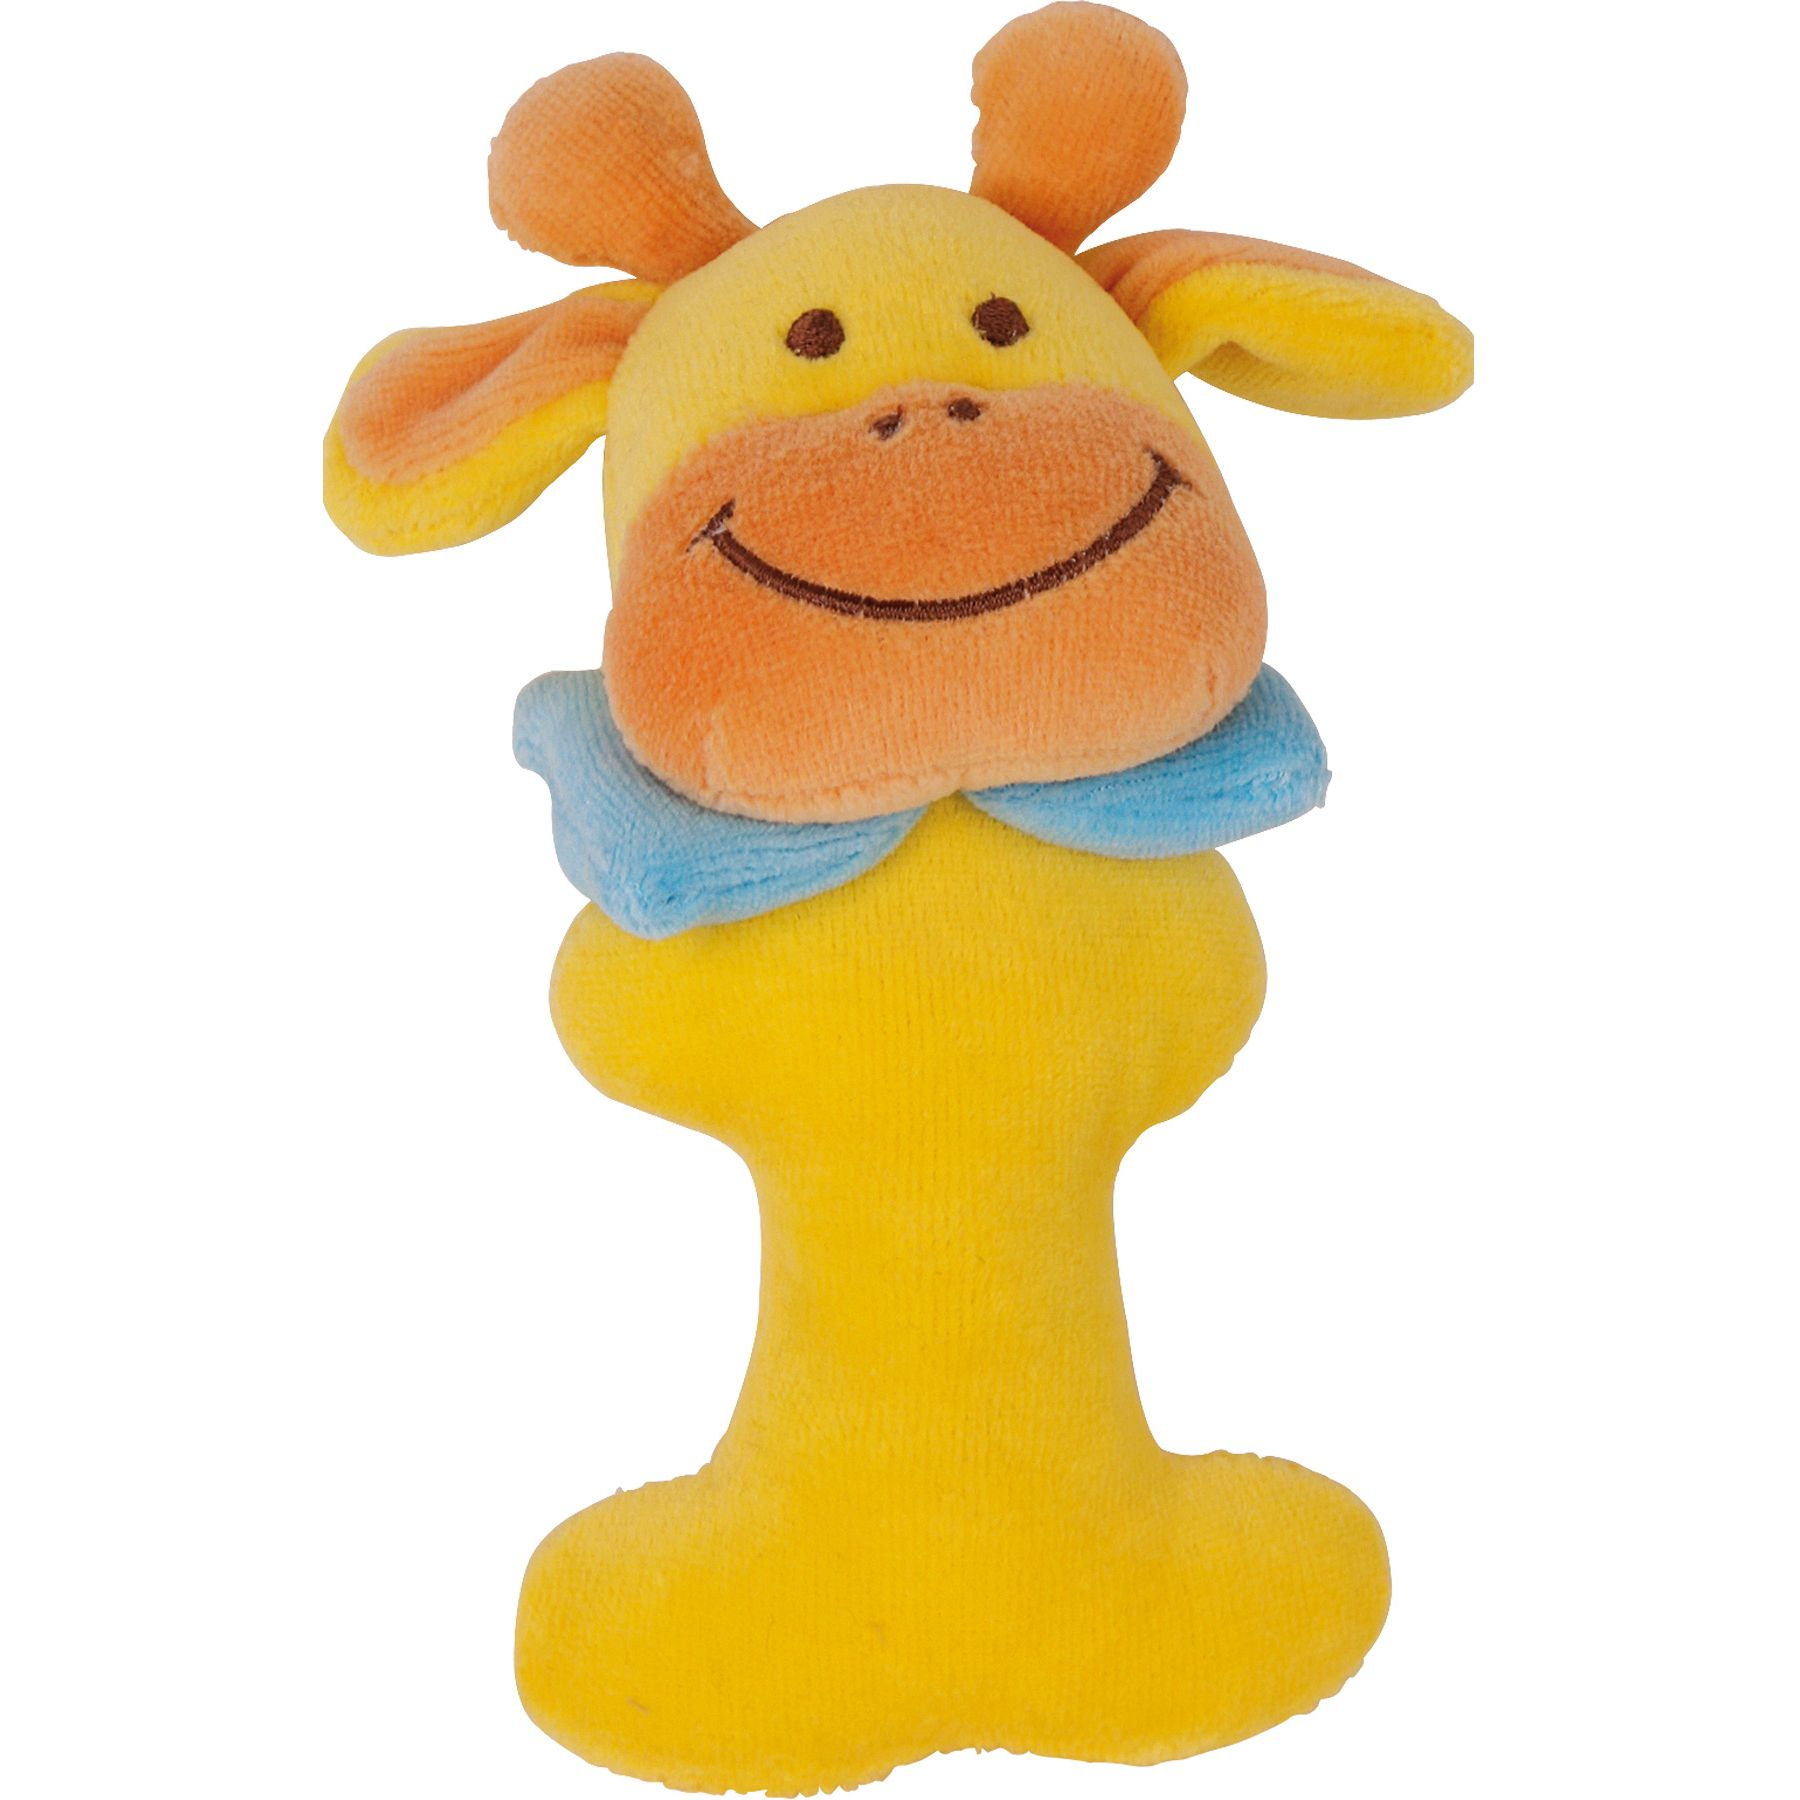 Doudous Legler - Small foot Baby Hochet peluche animaux